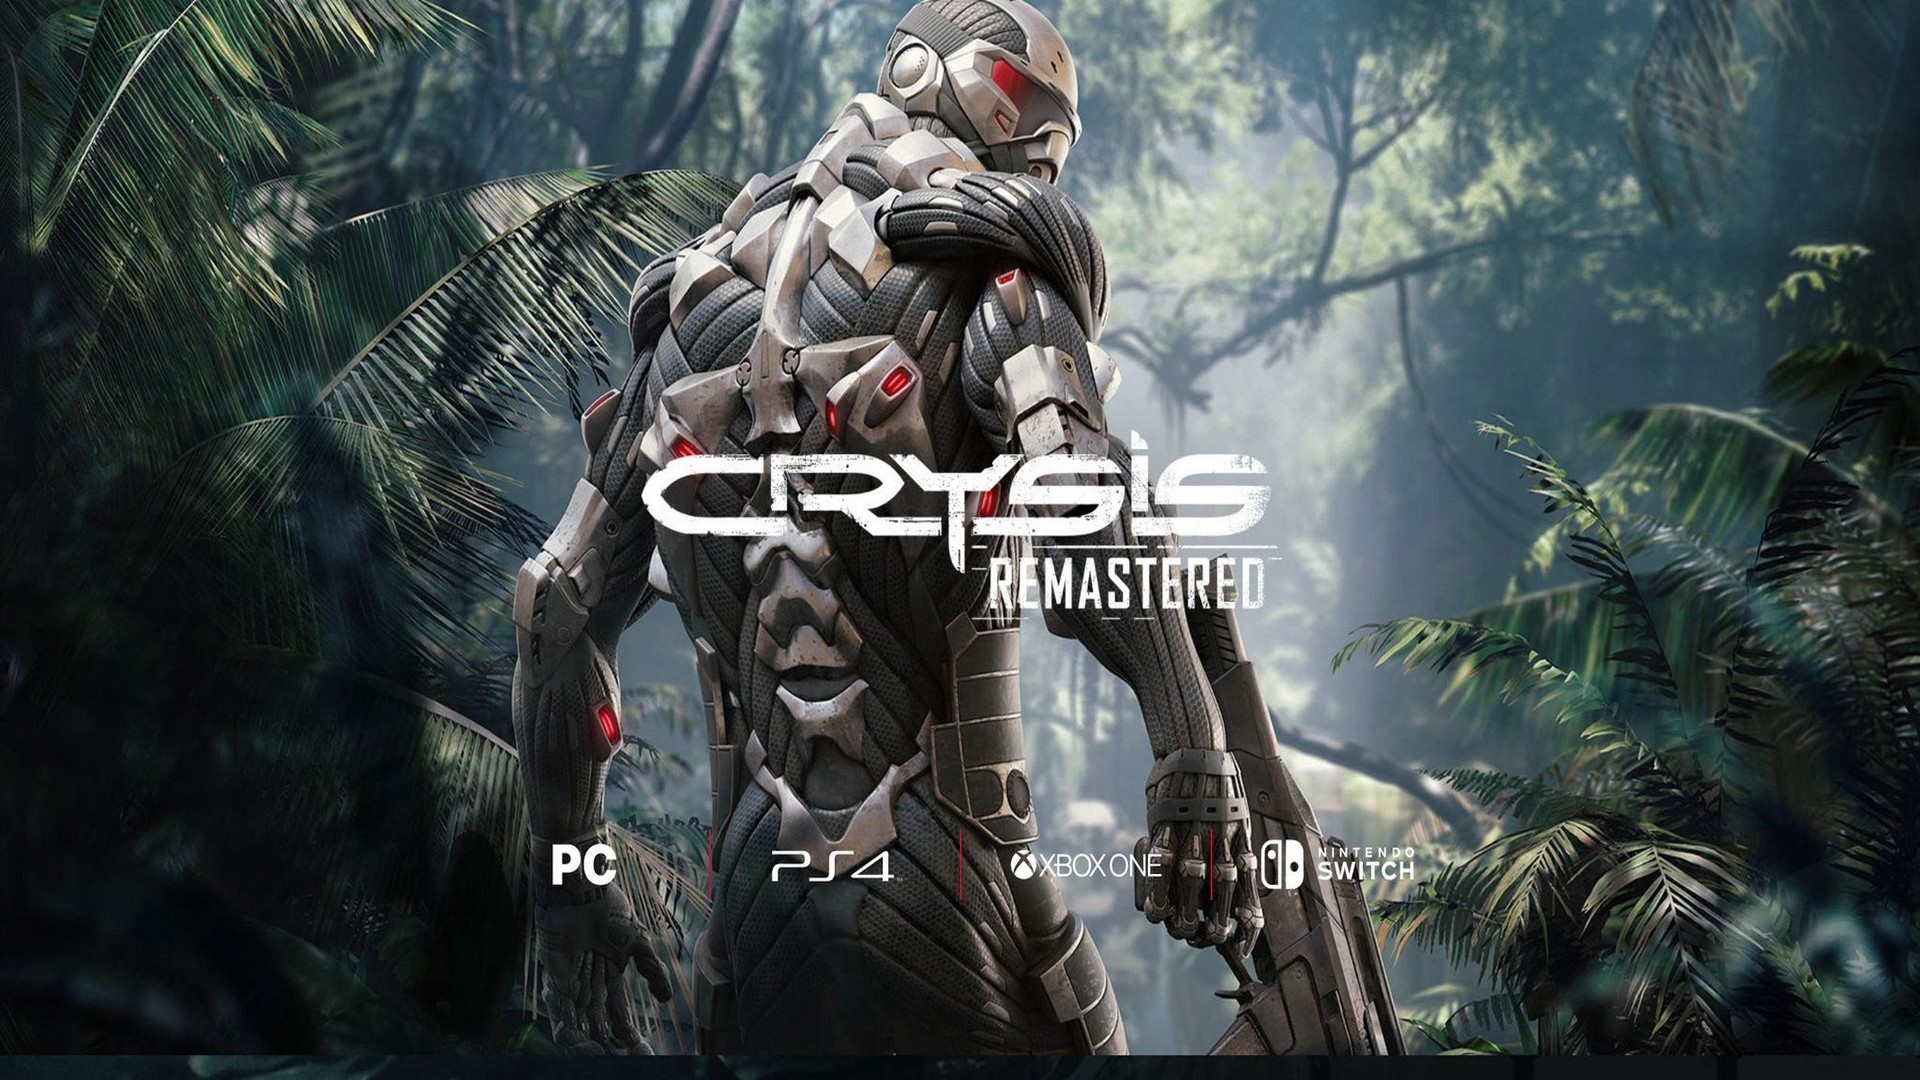 Crysis Remastered fuite sur PC, PS4, Xbox One et Switch